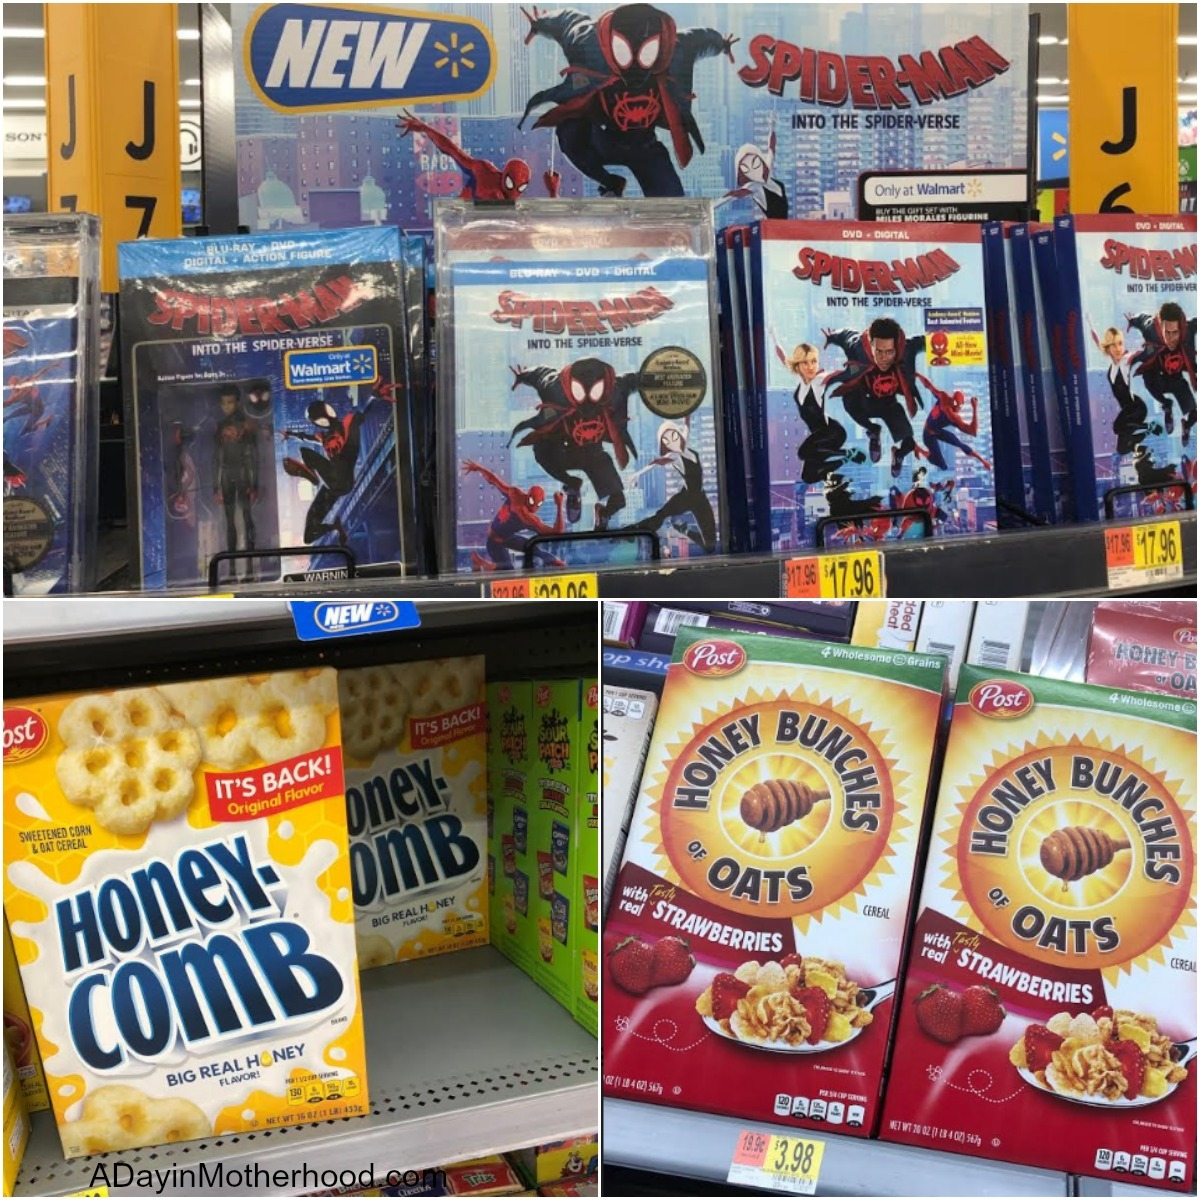 Spider-Man into the Spider-verse + Fun Treats = A Fun Filled Movie Night from walmart